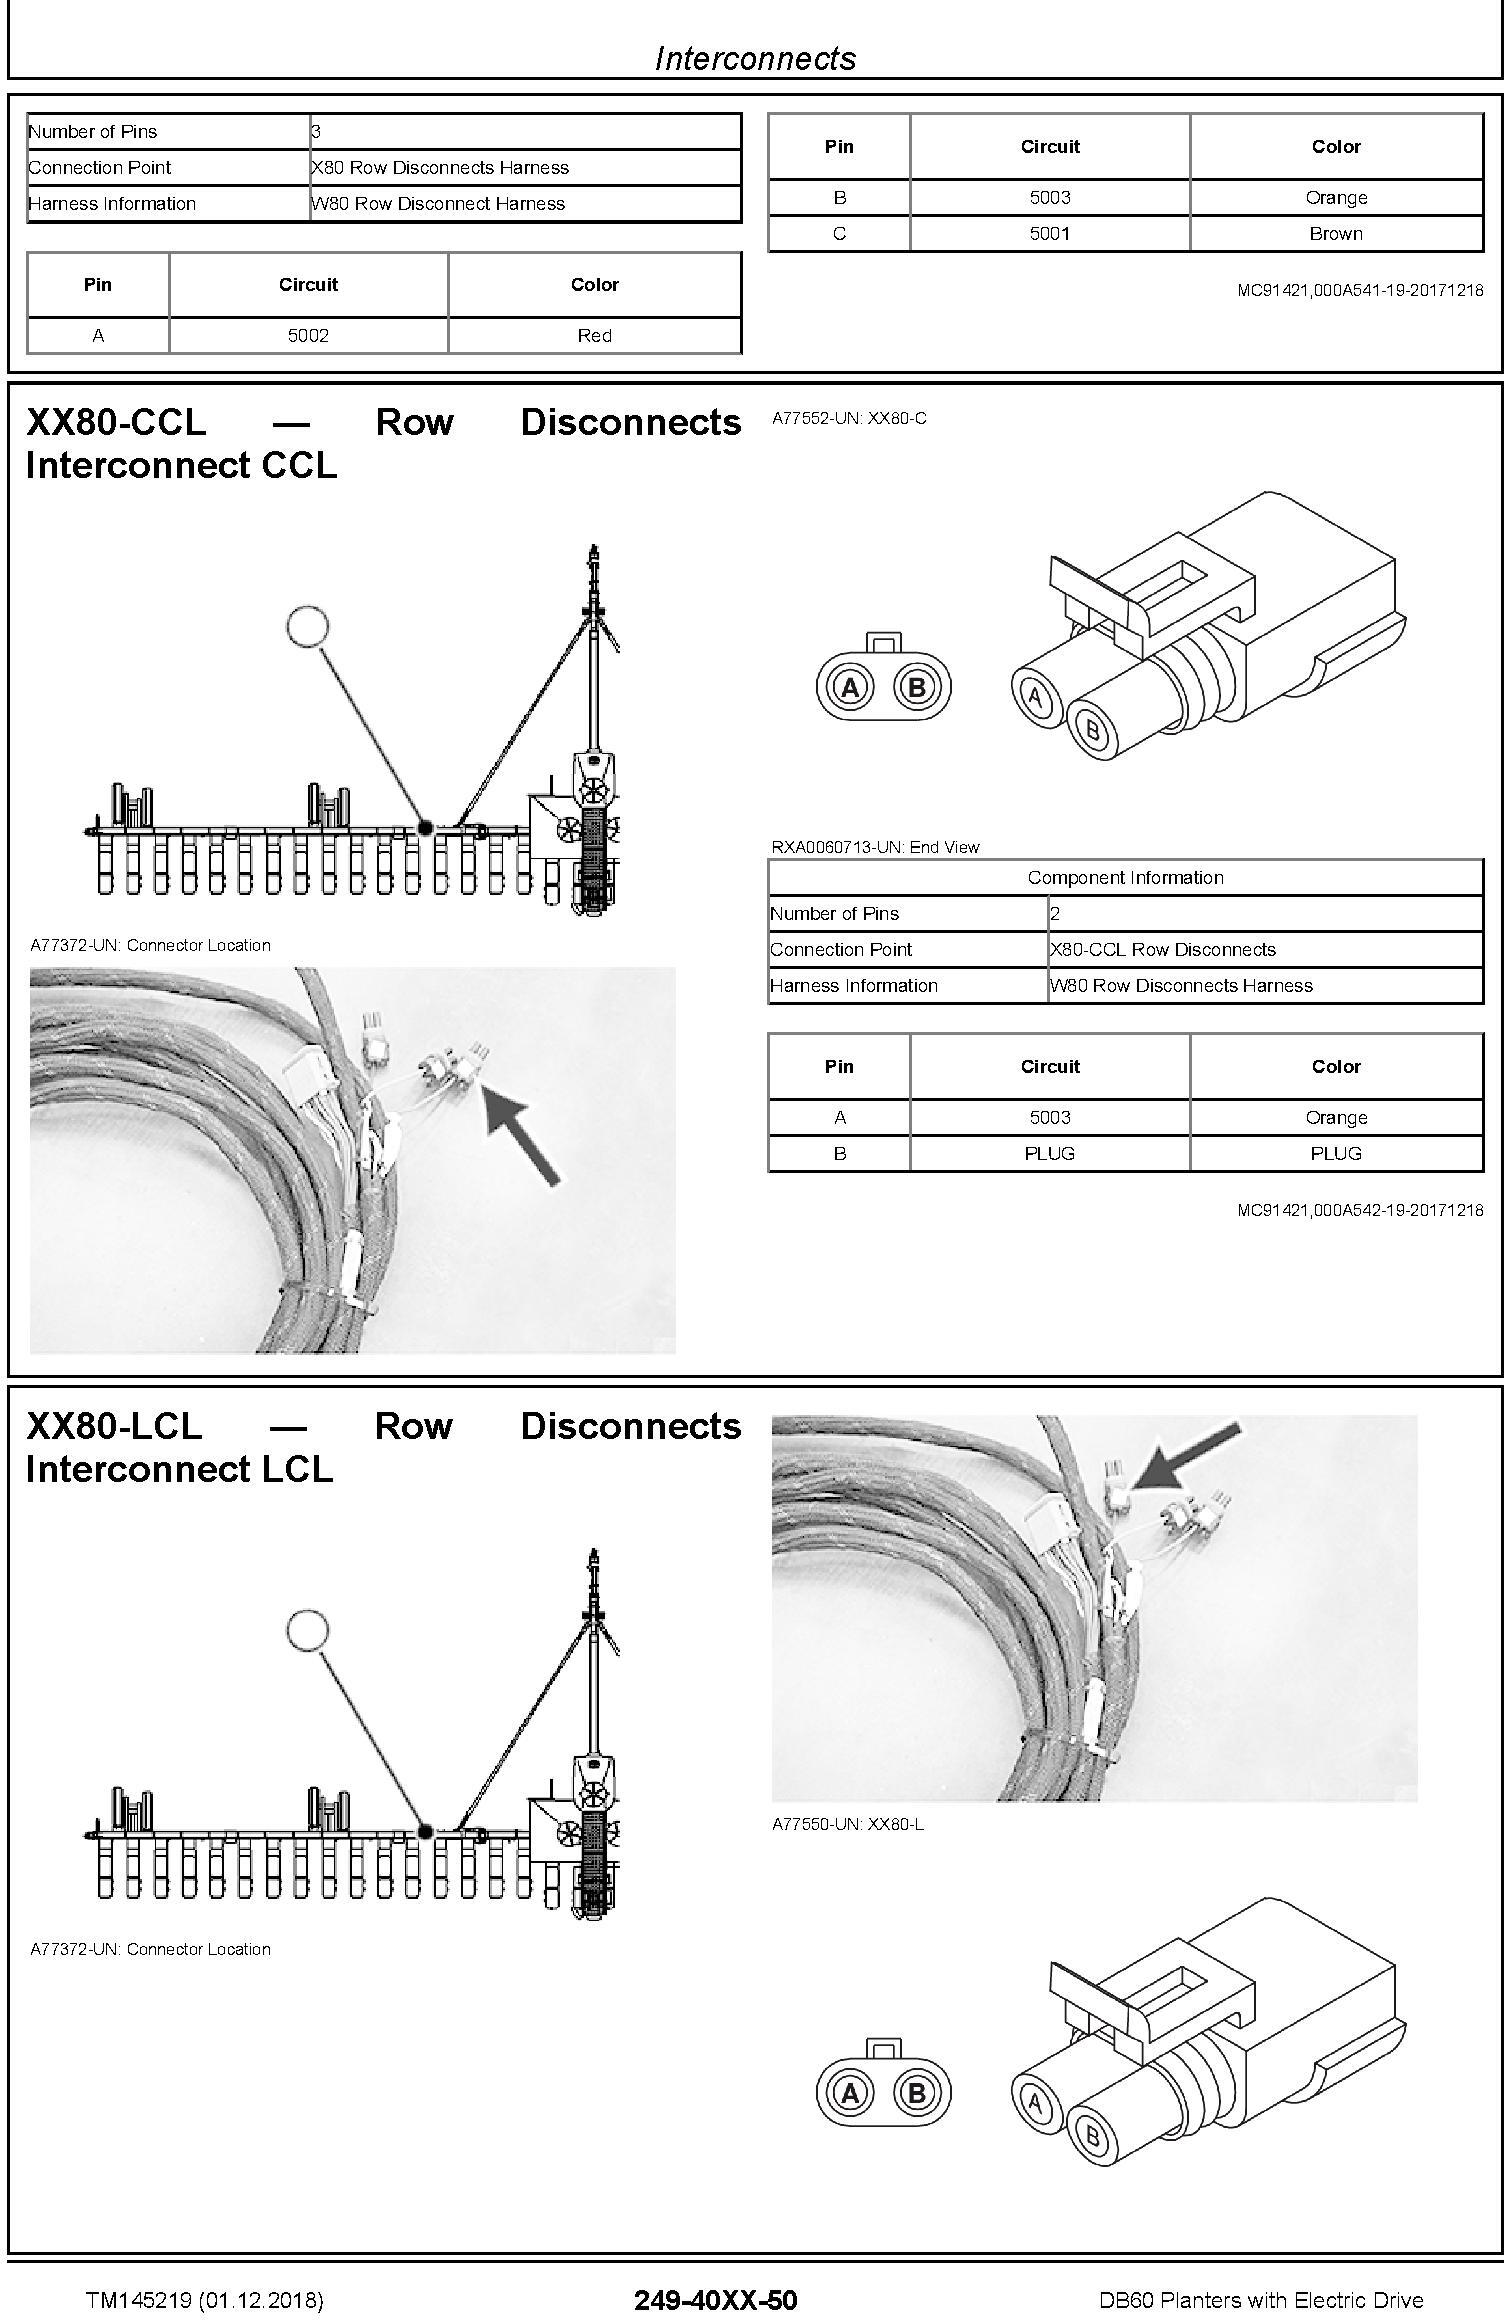 John Deere DB60 Planters with Electric Drive Diagnostic (SN.775100-) Technical Manual (TM145219) - 2